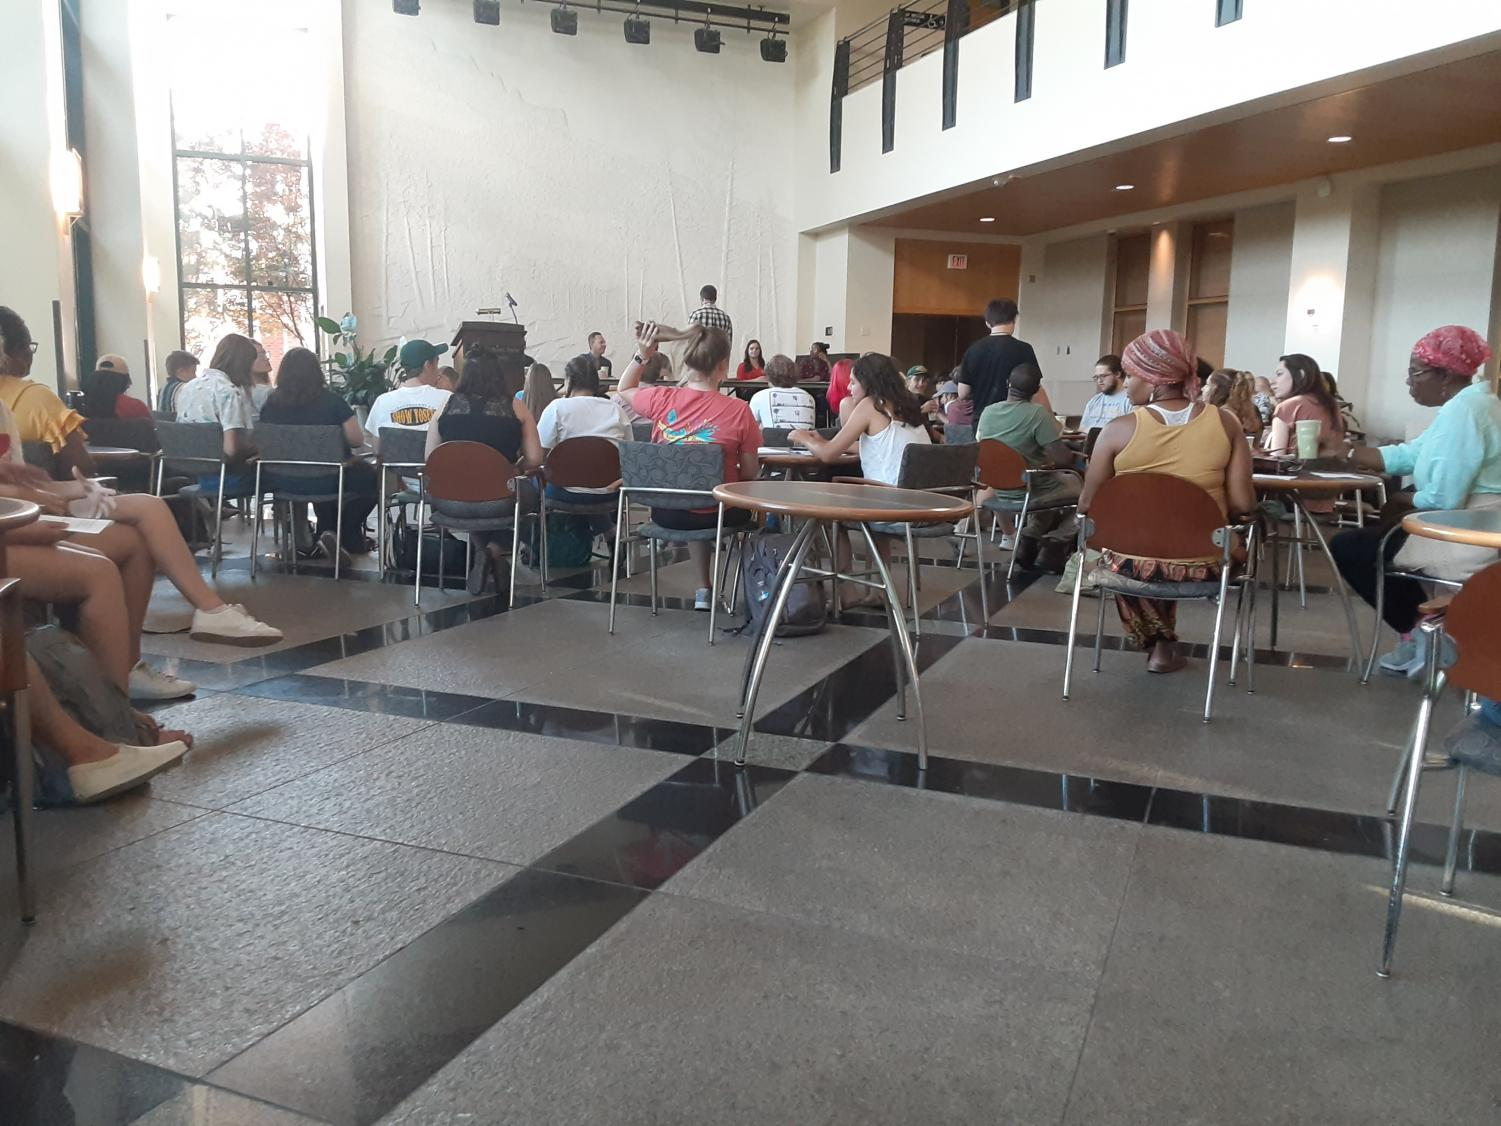 The student organization AppSpeaks hosted an event in the Plemmons Student Union Solarium on Sept. 4 called Appalachian Spoken Traditions. This was the second year the event on storytelling and spoken word was held.